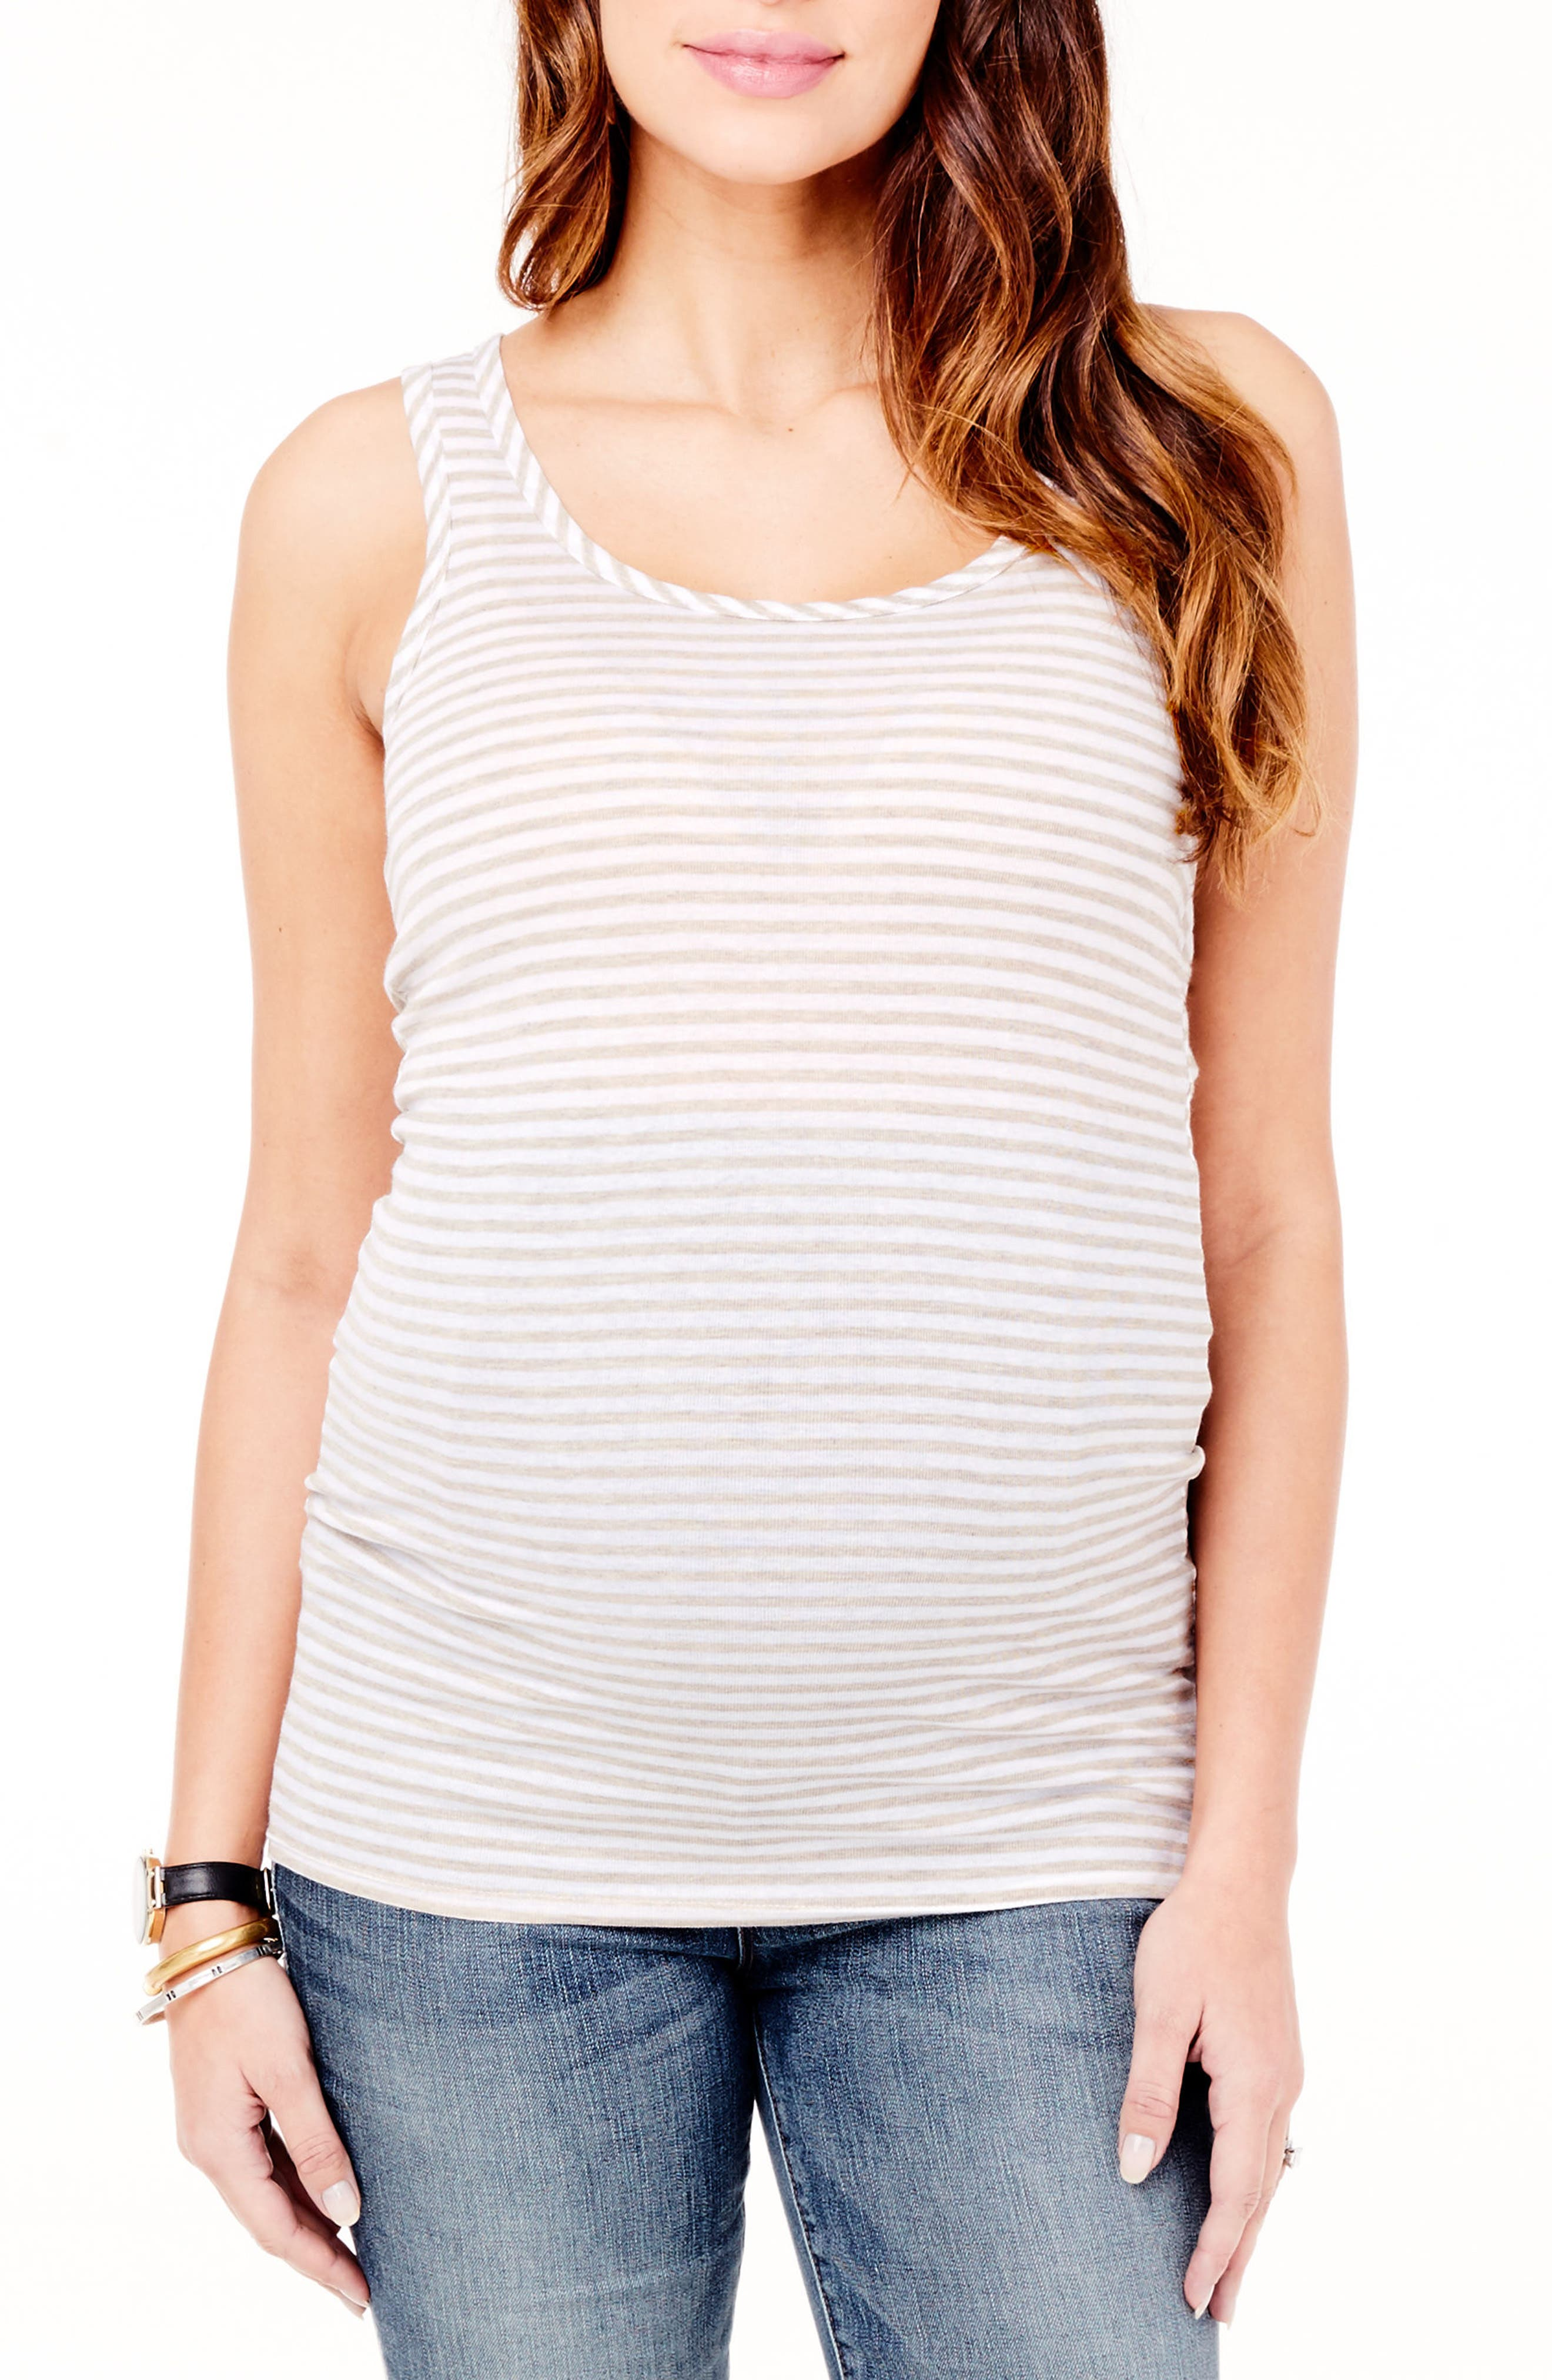 Sleeveless Maternity Top,                         Main,                         color, Oatmeal Heather/White Strip